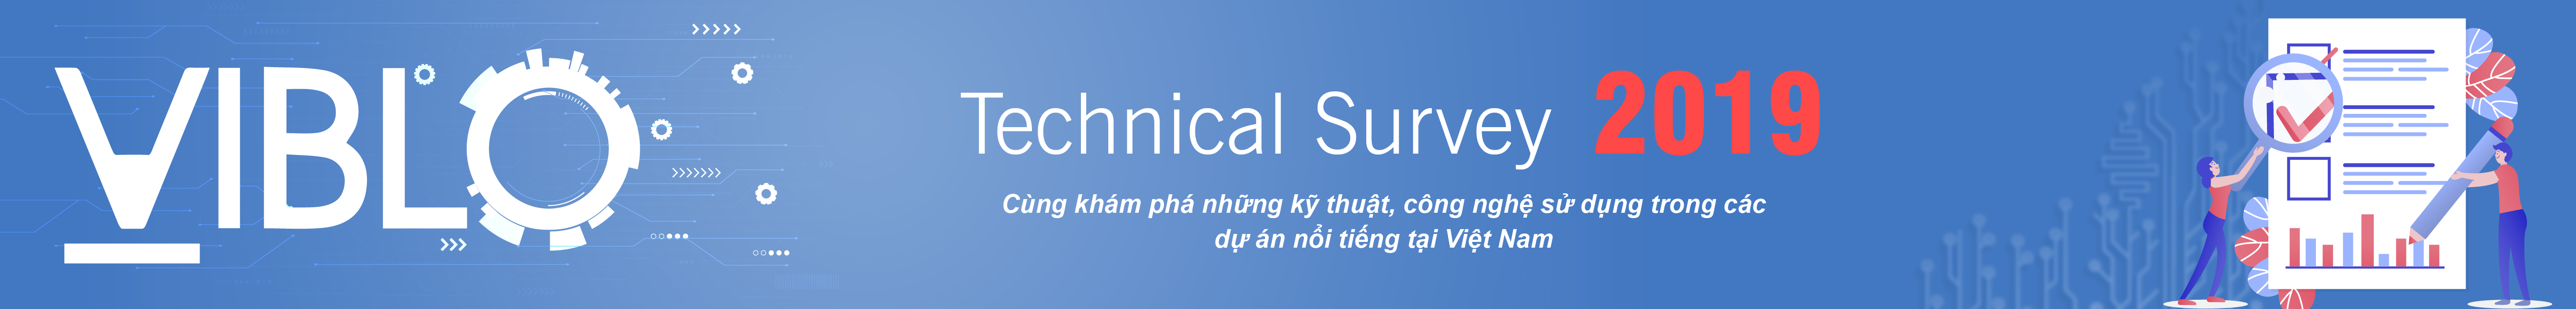 Viblo Technical Survey 2019